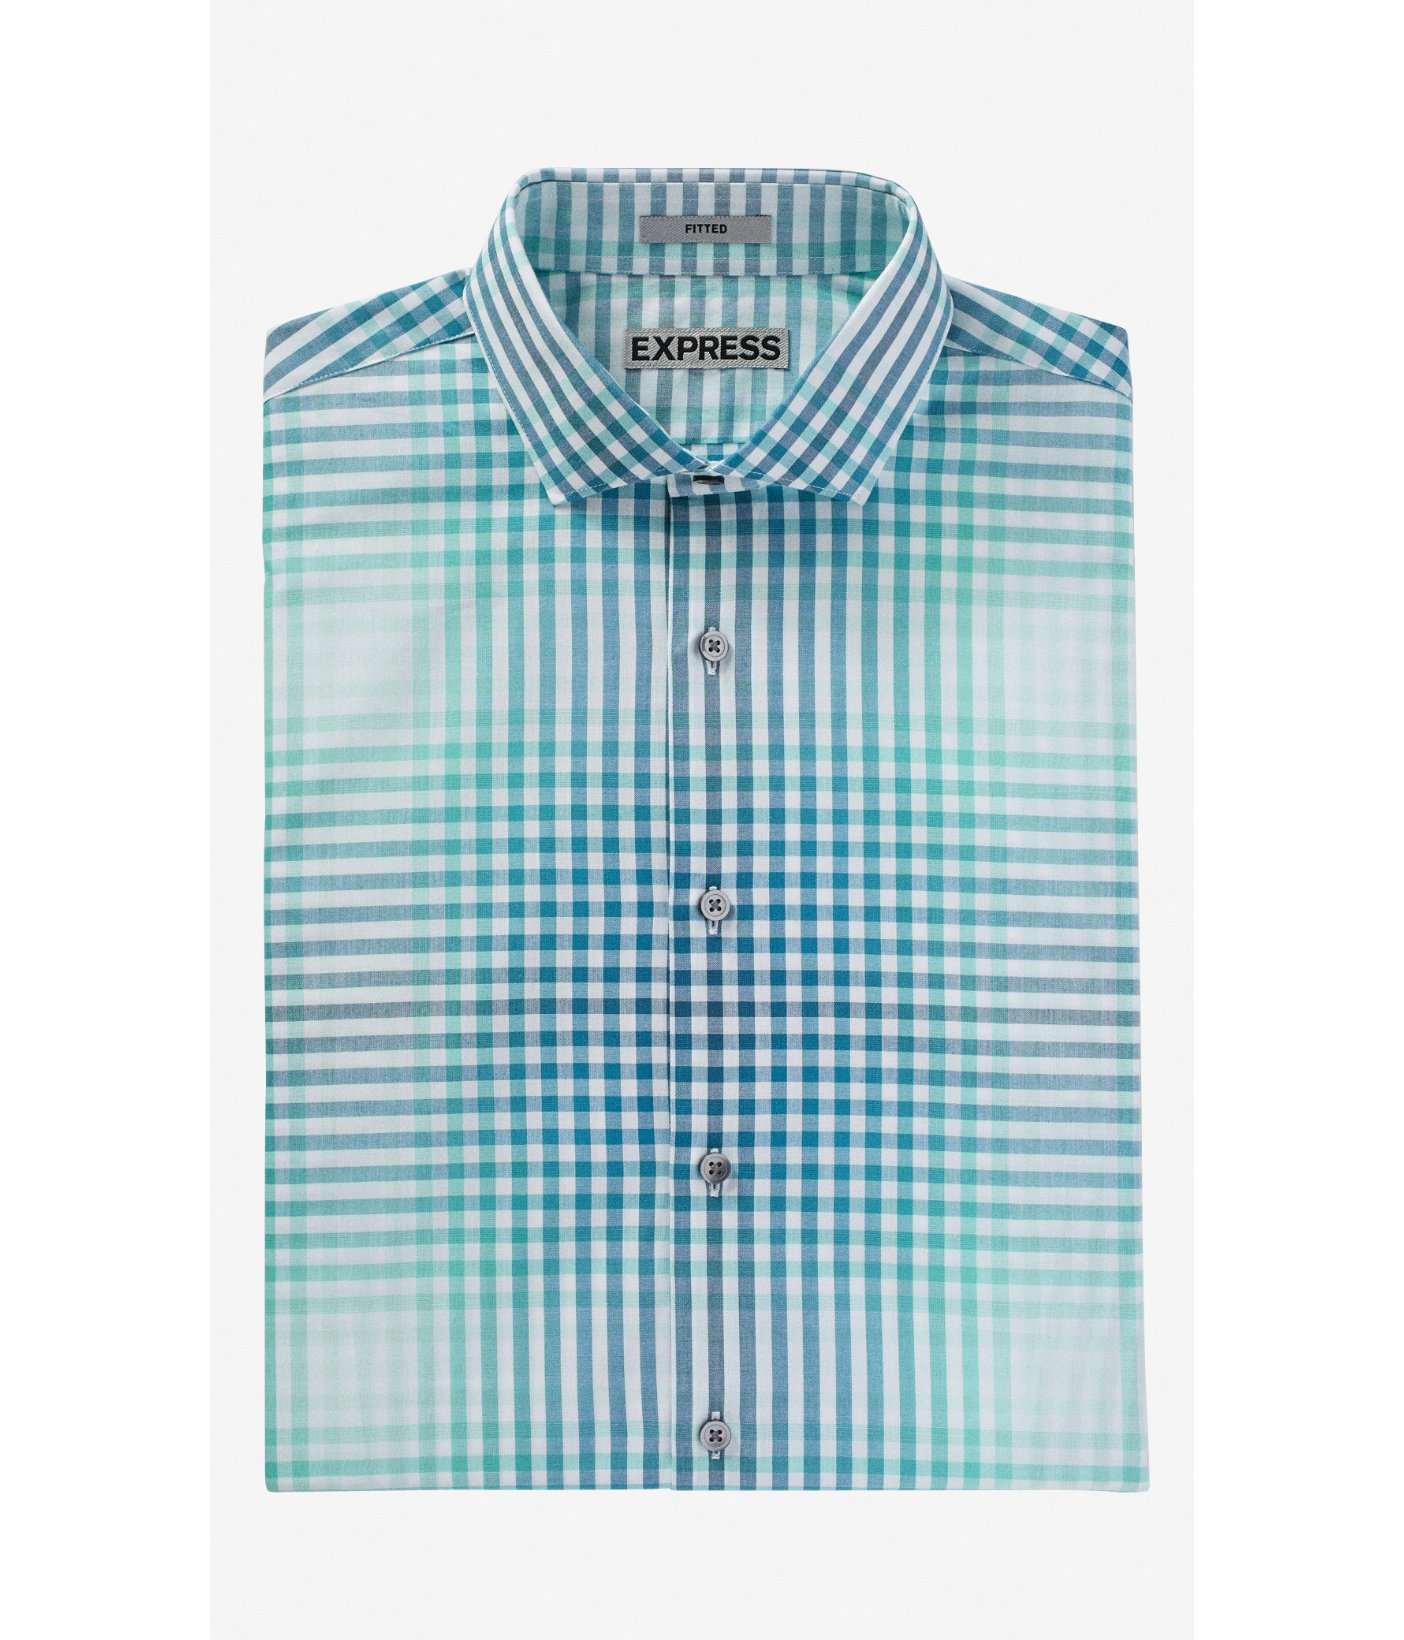 Express Fitted Plaid Dress Shirt In Teal For Men Teal